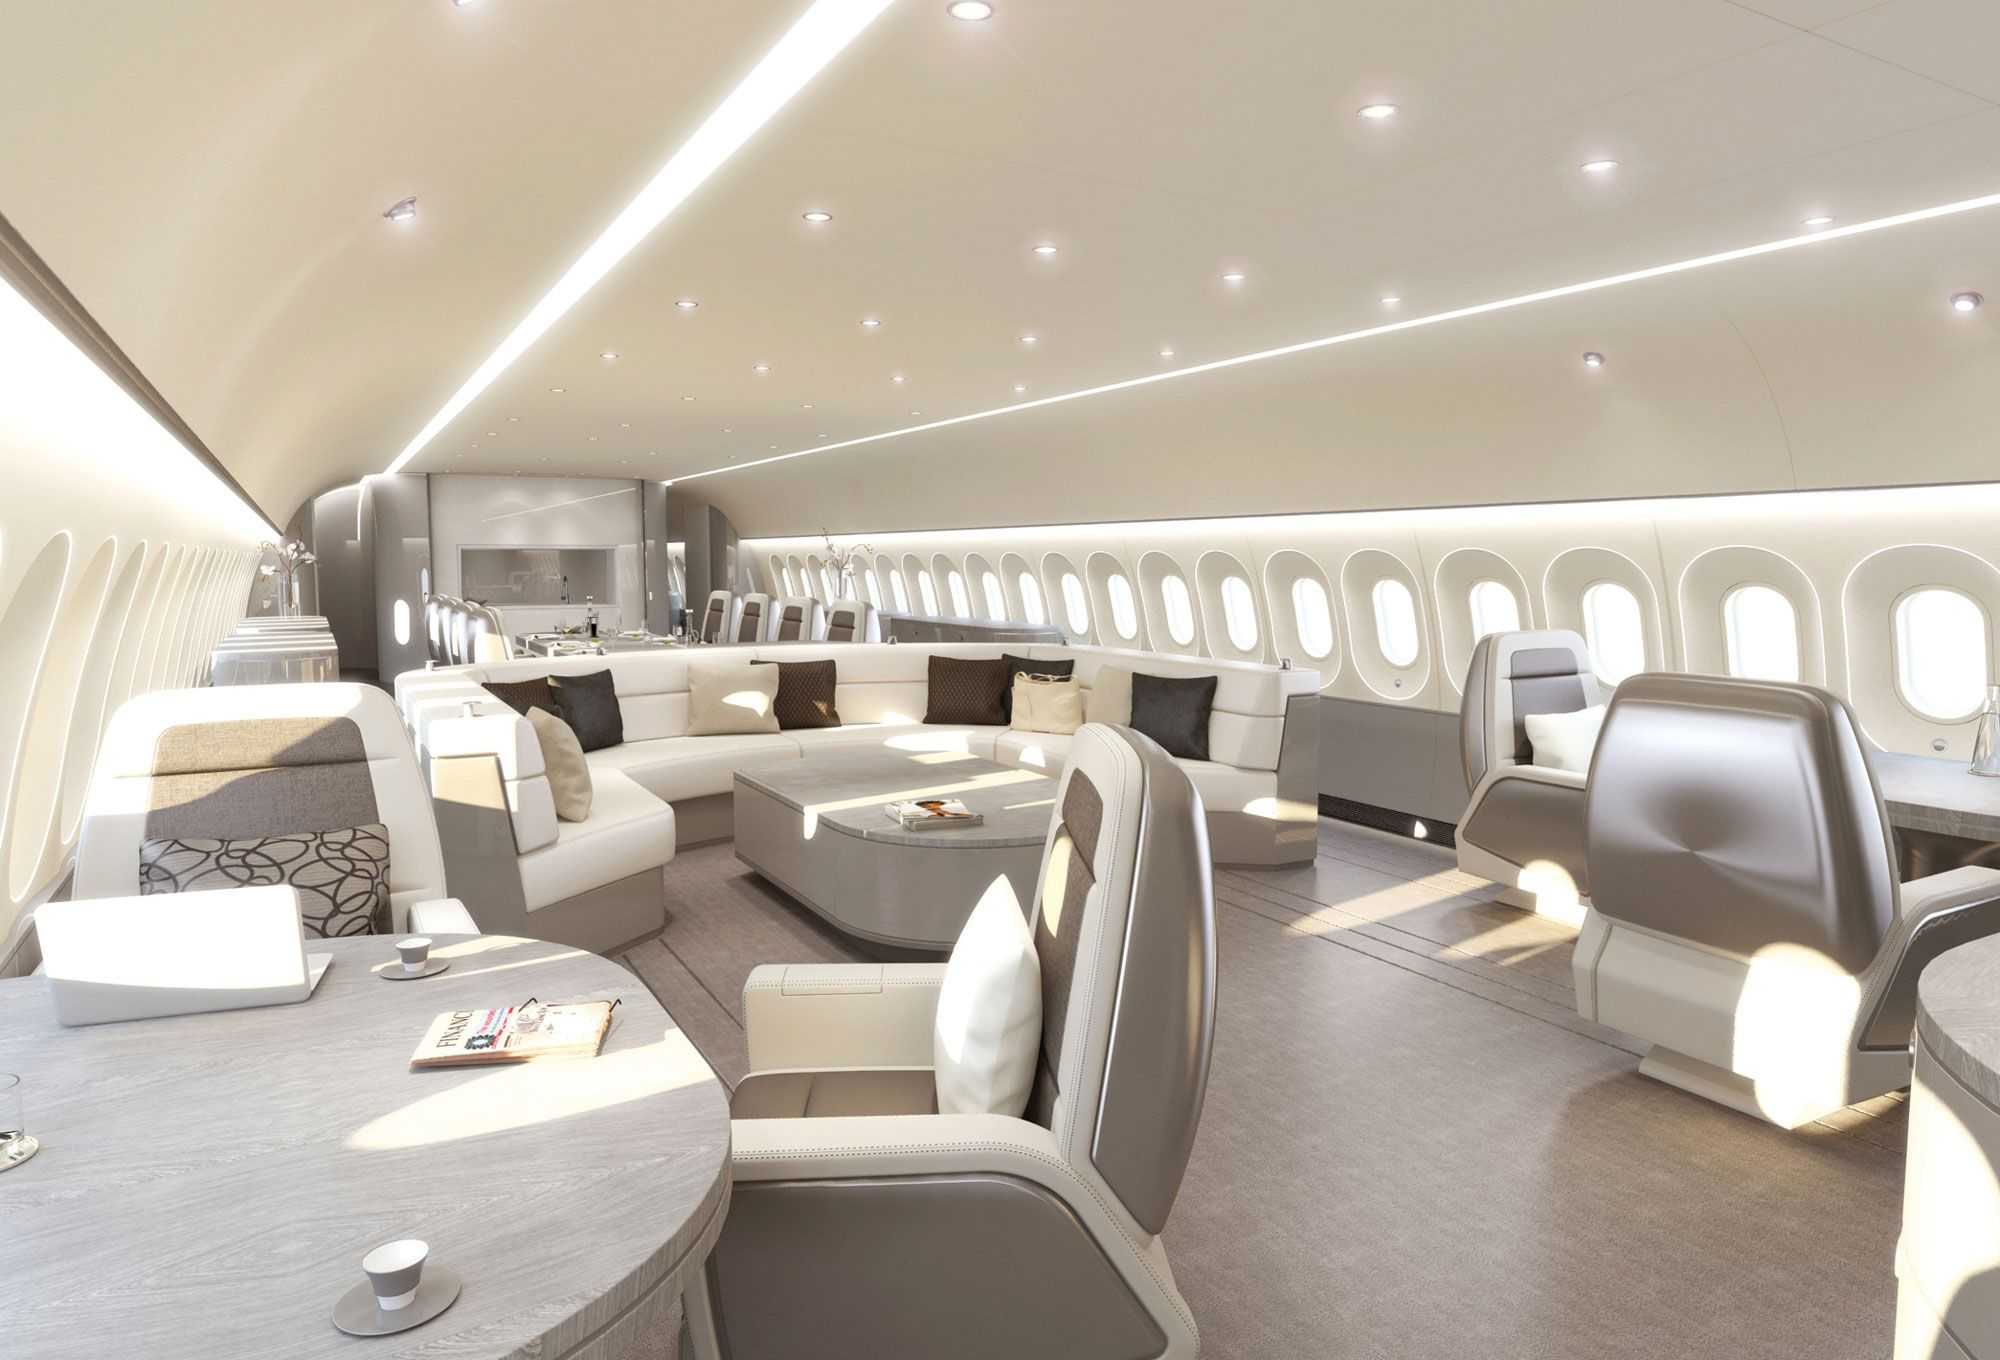 Luxury Vip Cabins Increasing In Popularity Business Aviation